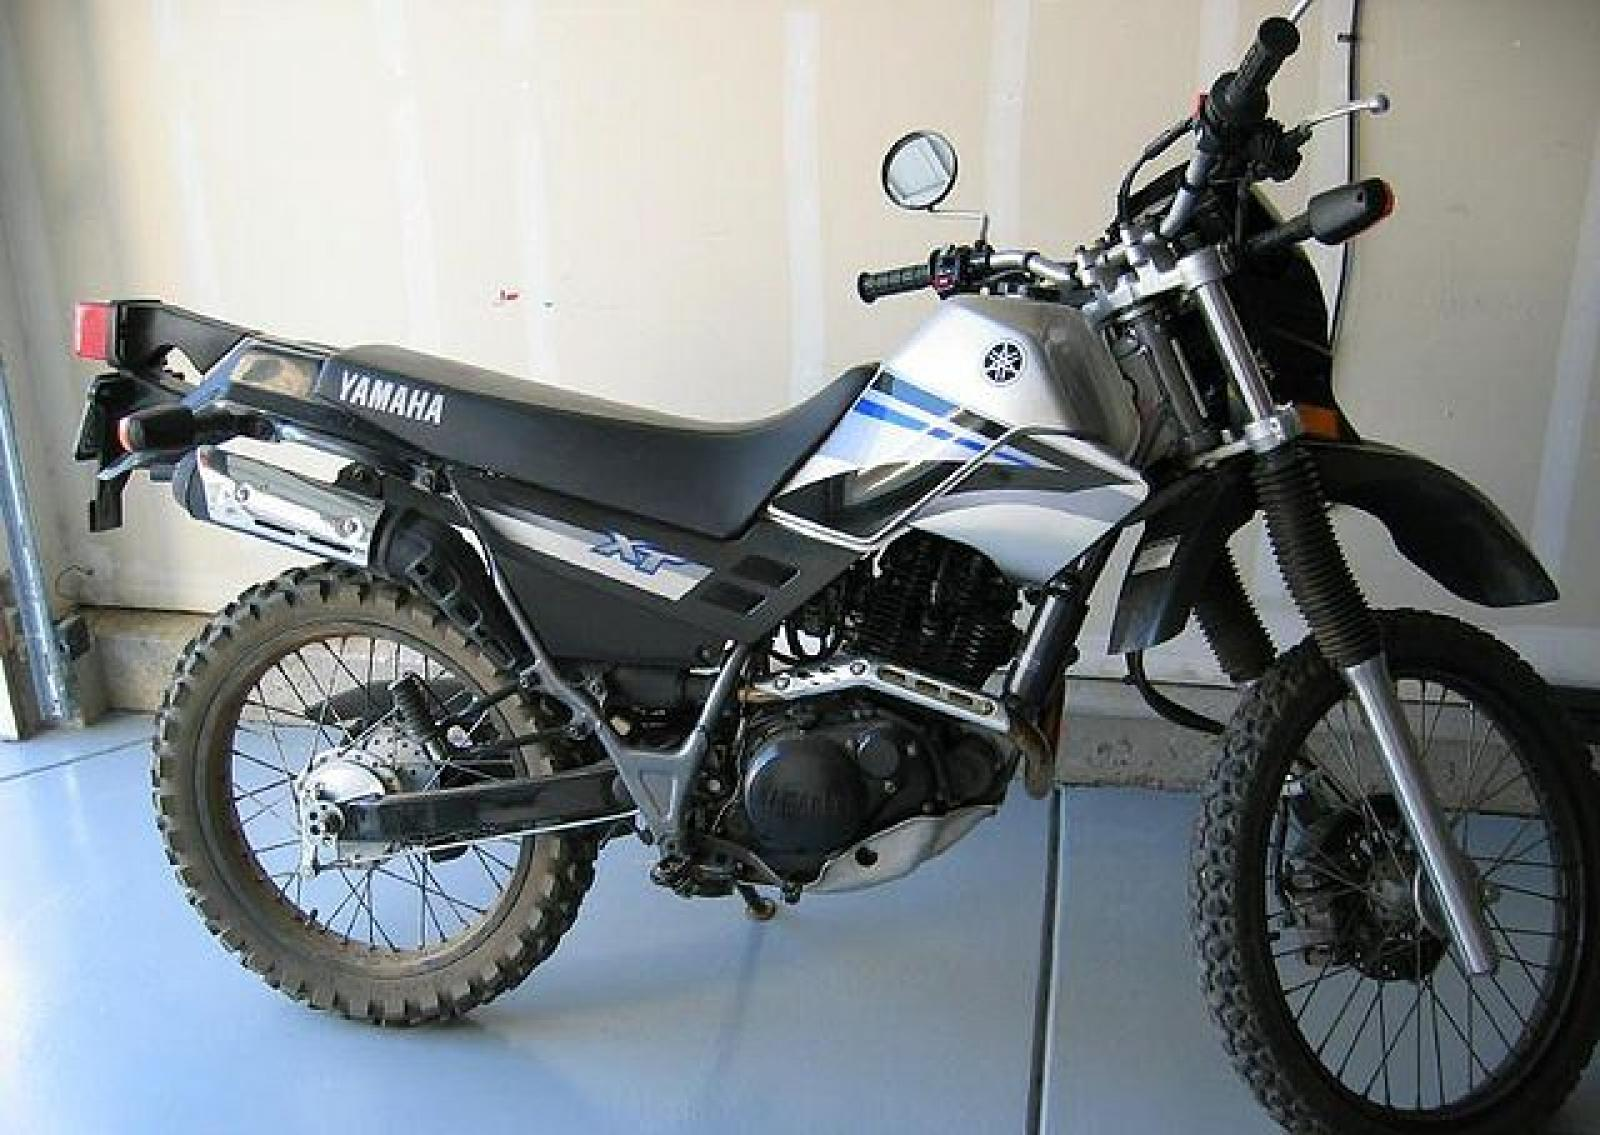 hight resolution of 800 1024 1280 1600 origin yamaha xt 225